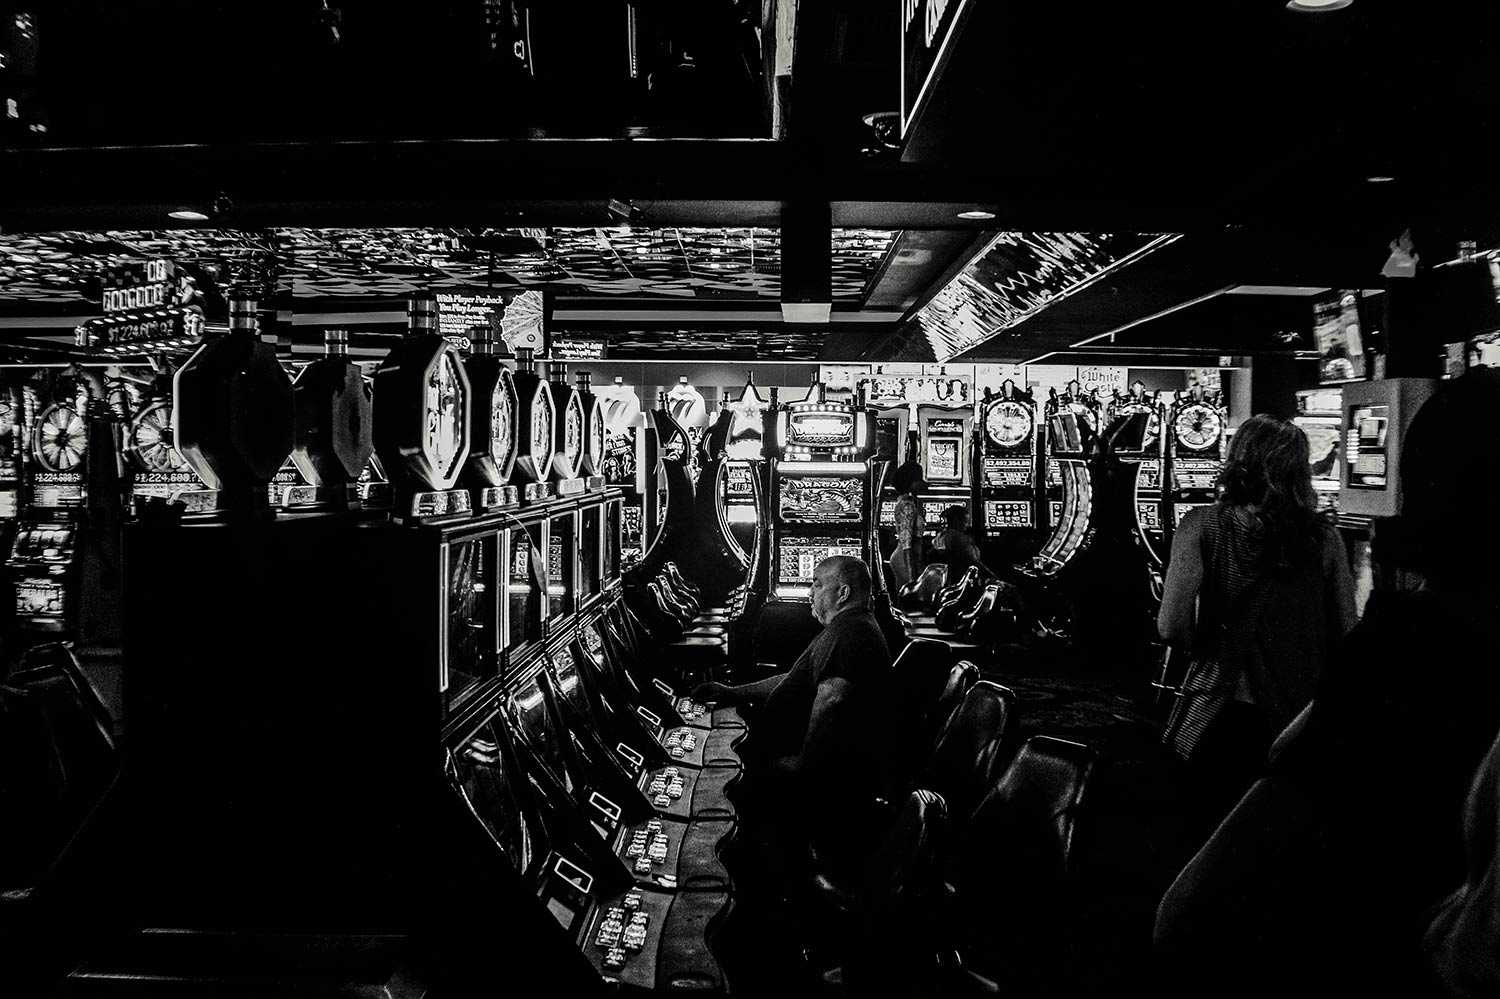 Casino in Black and White